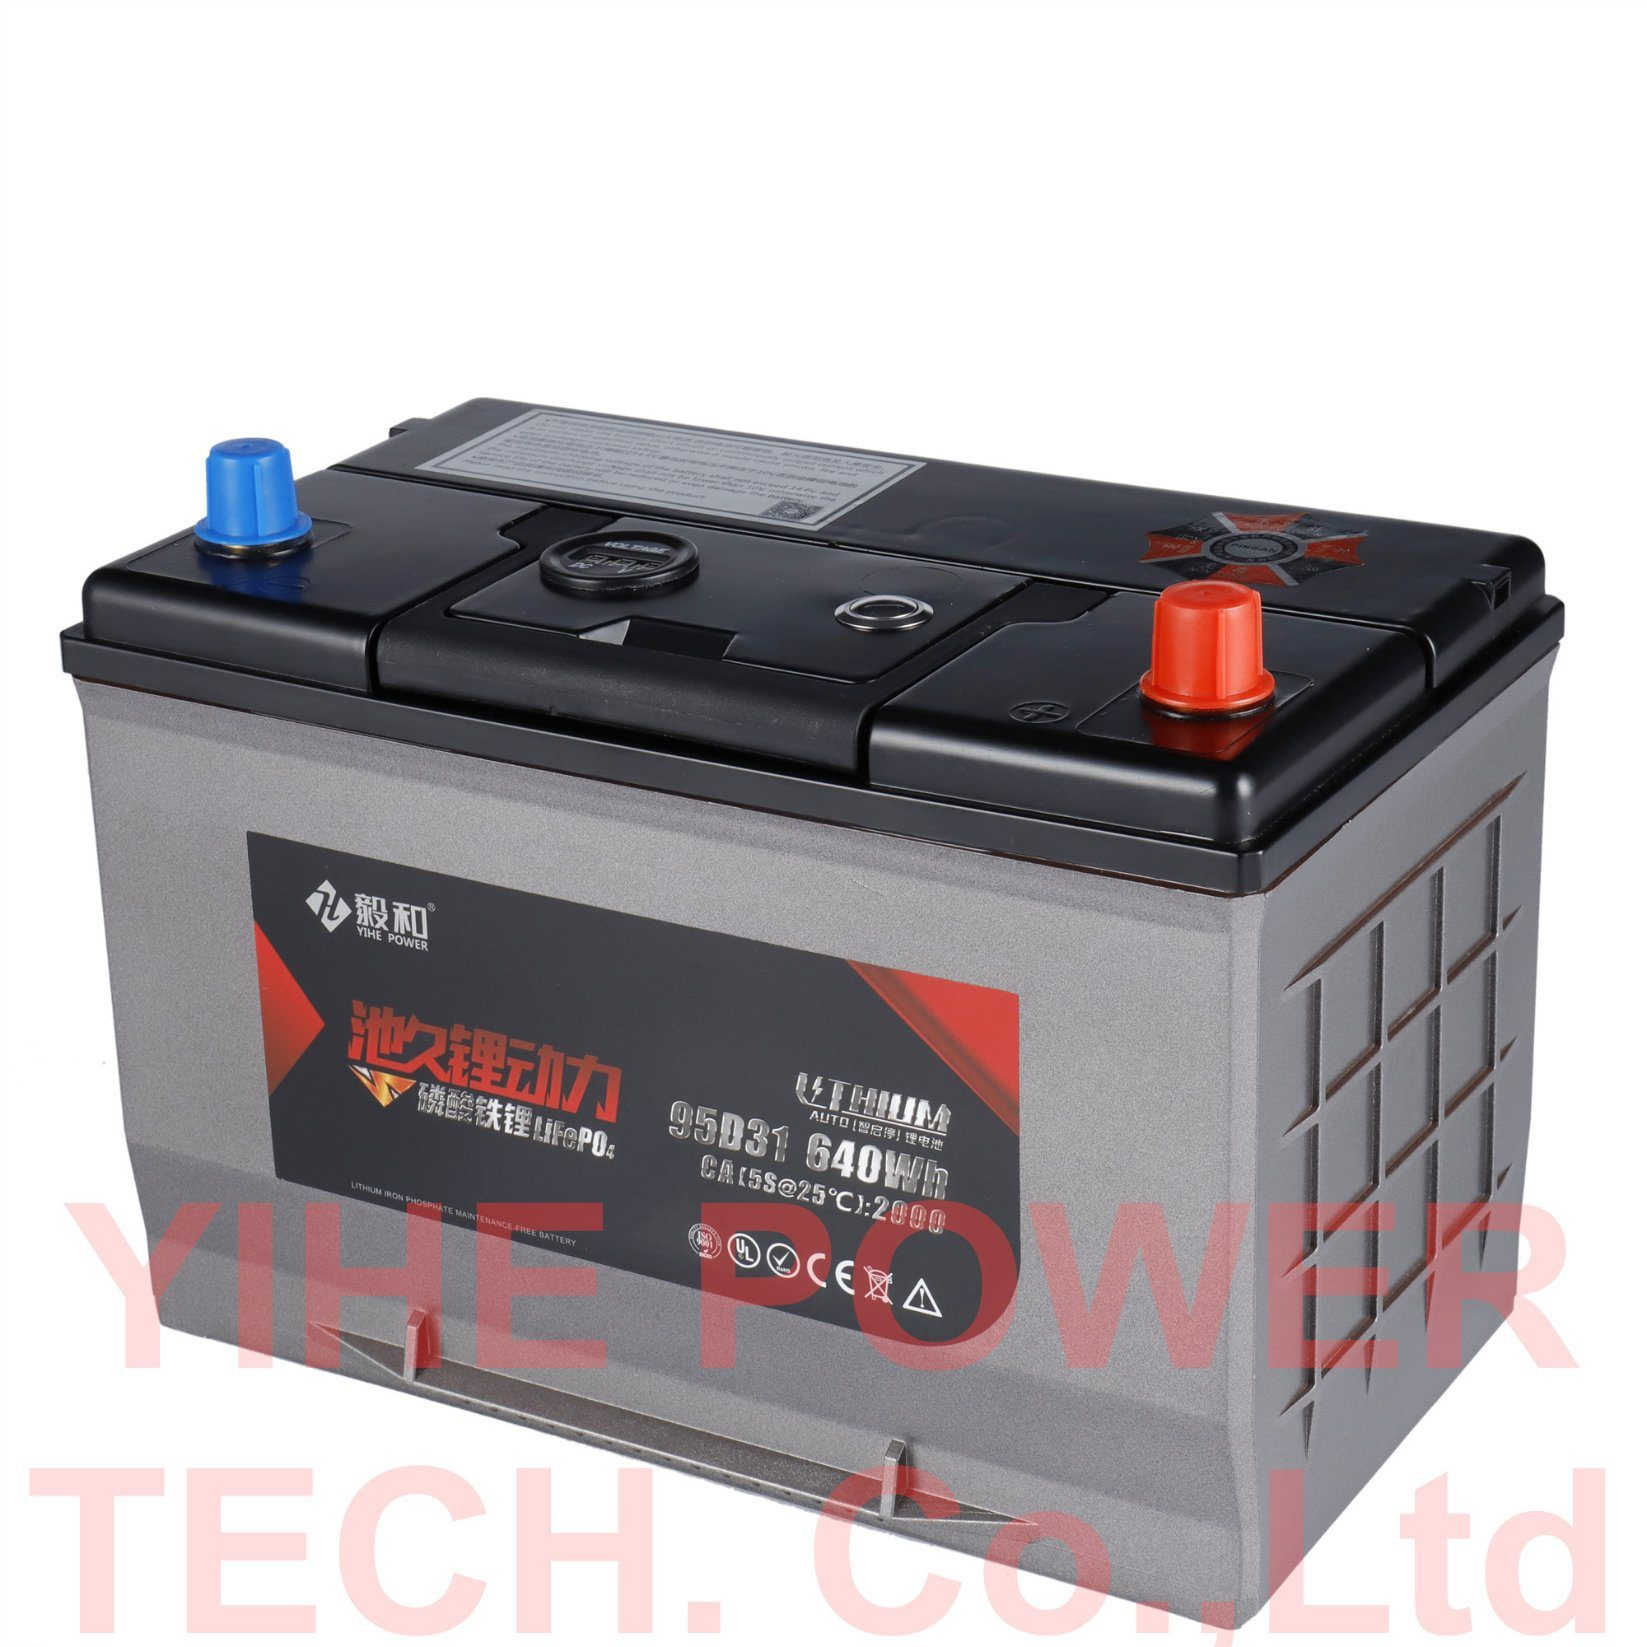 Lithium Car Battery >> Hot Item 12v Lithium Car Start Stop Battery 80ah 90ah 95ah 95d31